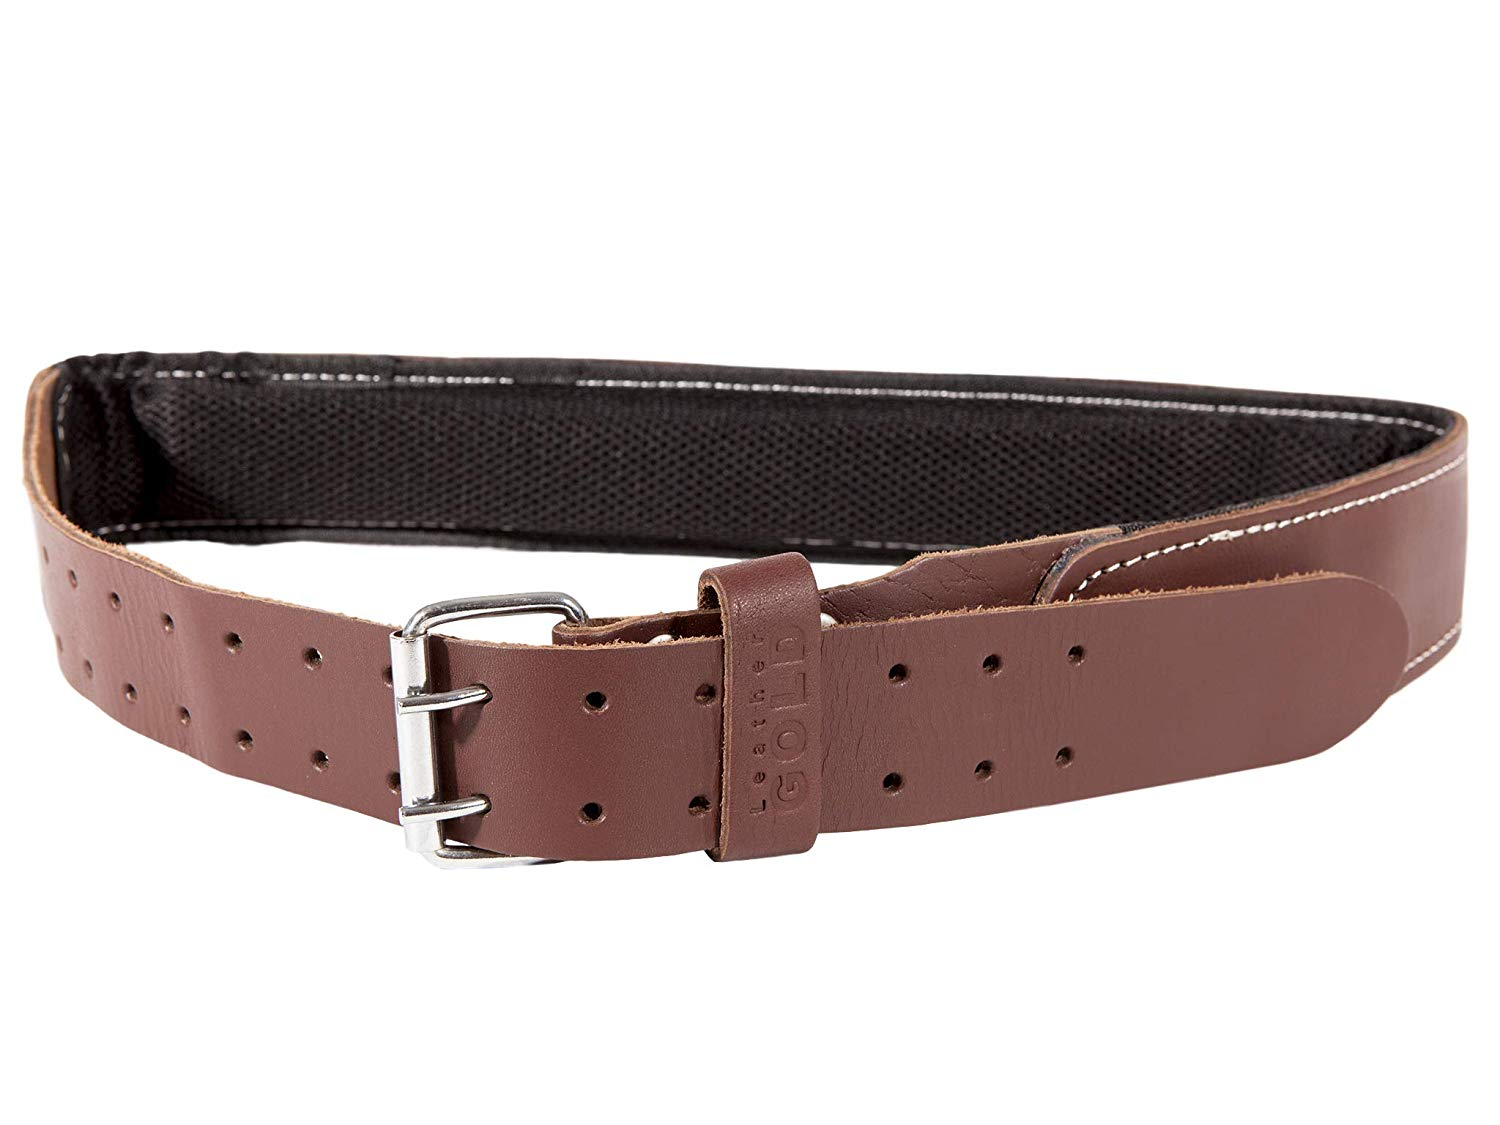 Leather Gold Padded Tool Belt, 2 Inch Wide | Genuine Grain Leather Belt with Double Prong Buckle and Two Hole Rows | Comfortable Mesh and Foam Padding | Built Tough For Pouches and Construction Tools